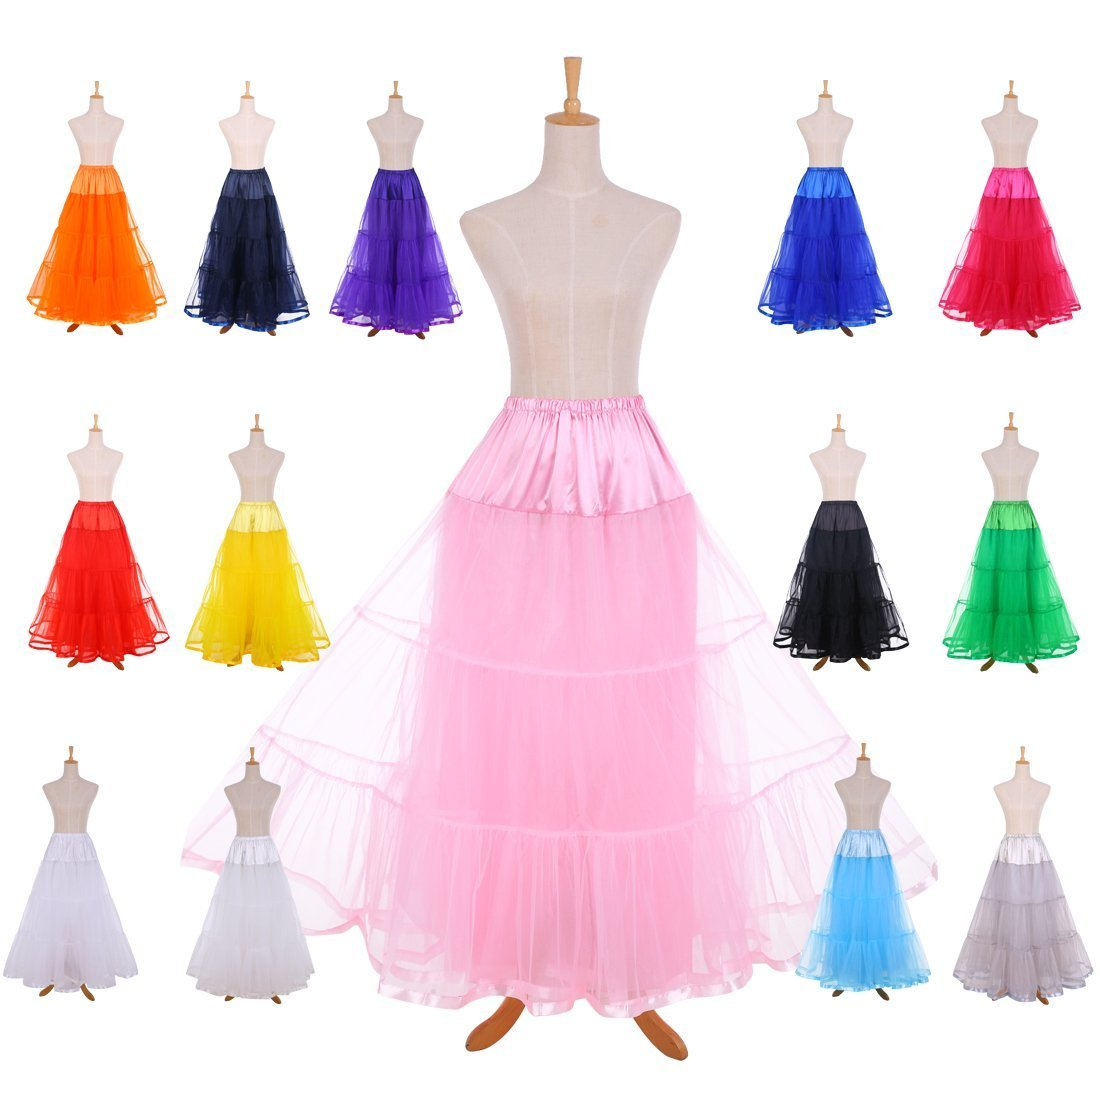 Crinoline Skirt | Crinoline Slips | Crinoline Petticoat Ankle Length Petticoats for Wedding Dress $18.99 AT vintagedancer.com